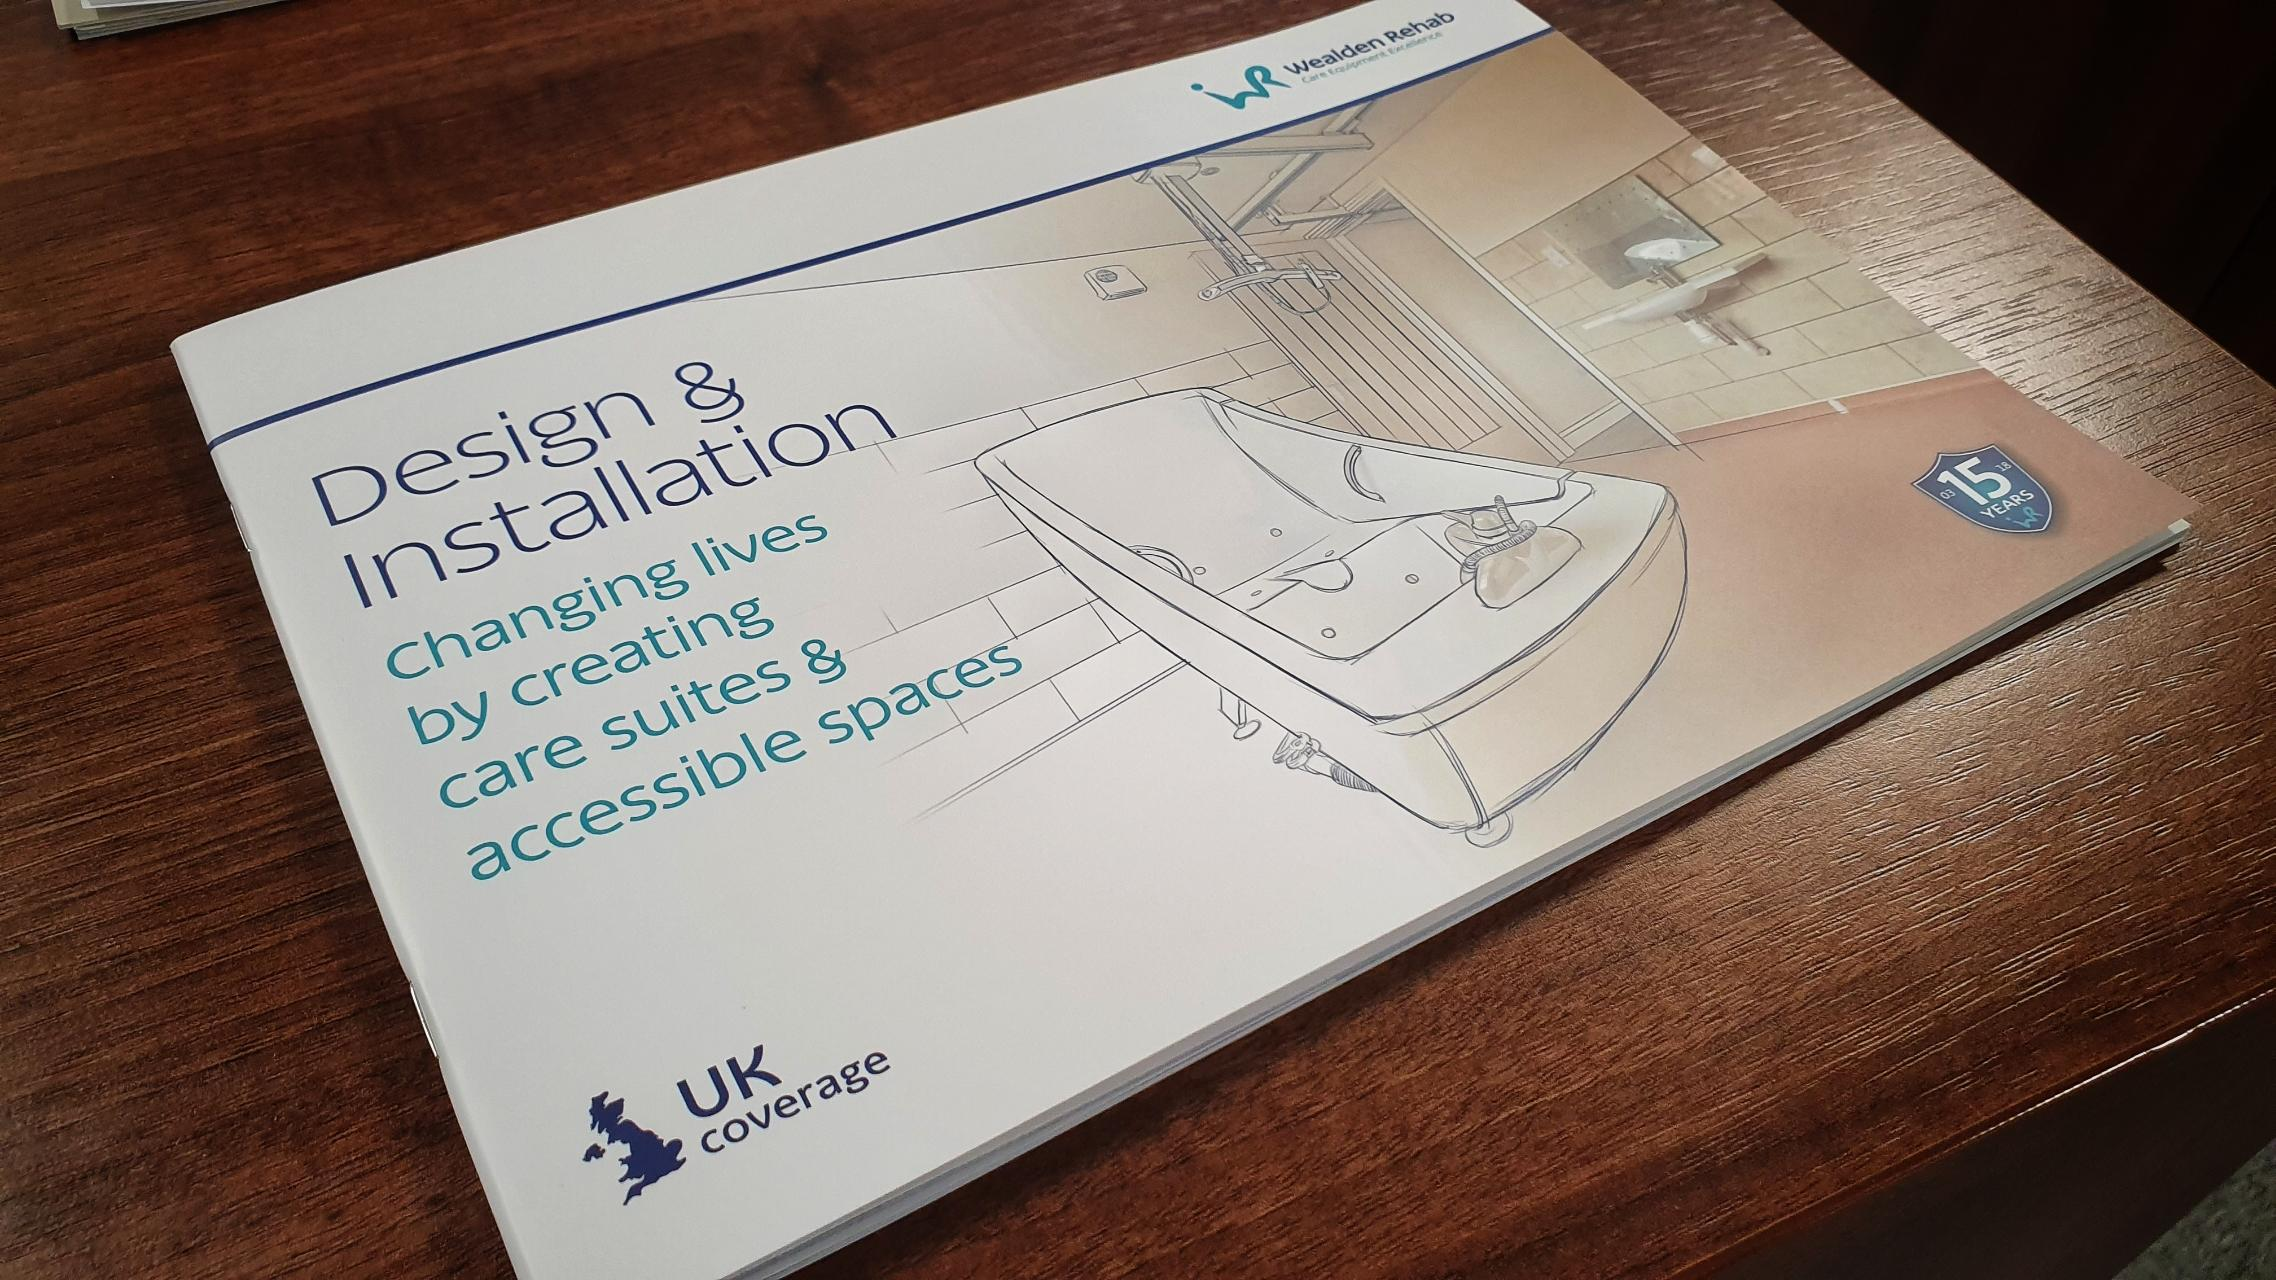 Brochure design for a Kent based care equipment company that helps change lives